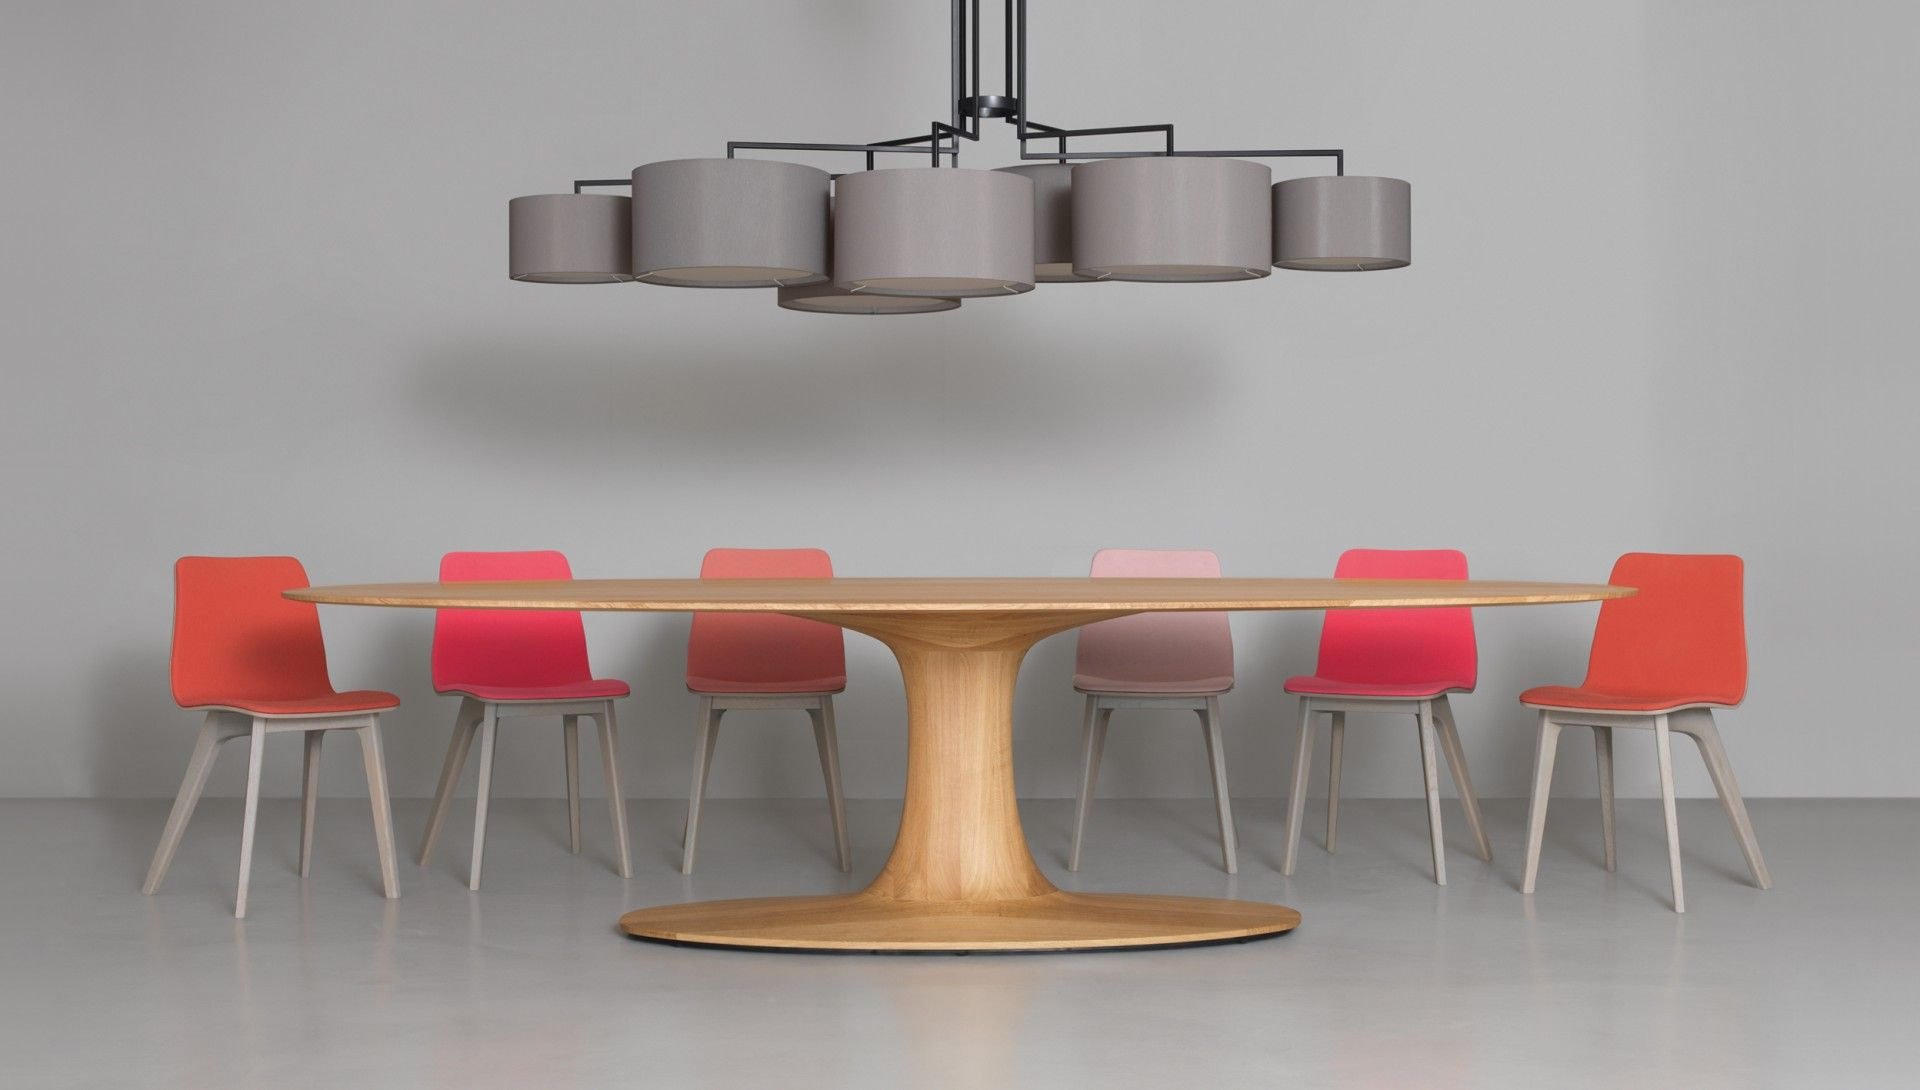 Turntable Oval Table Dining Table Oval Table Dining